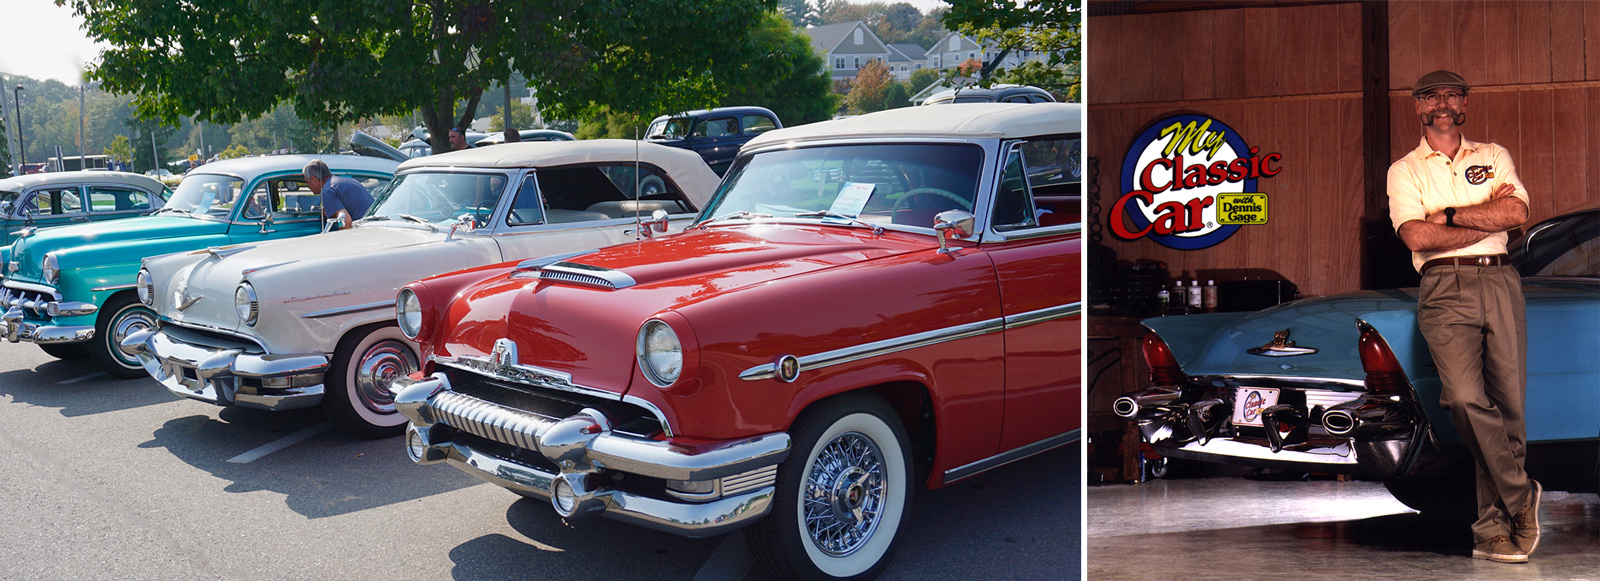 Old Orchard Beach Car Show - Antique car show